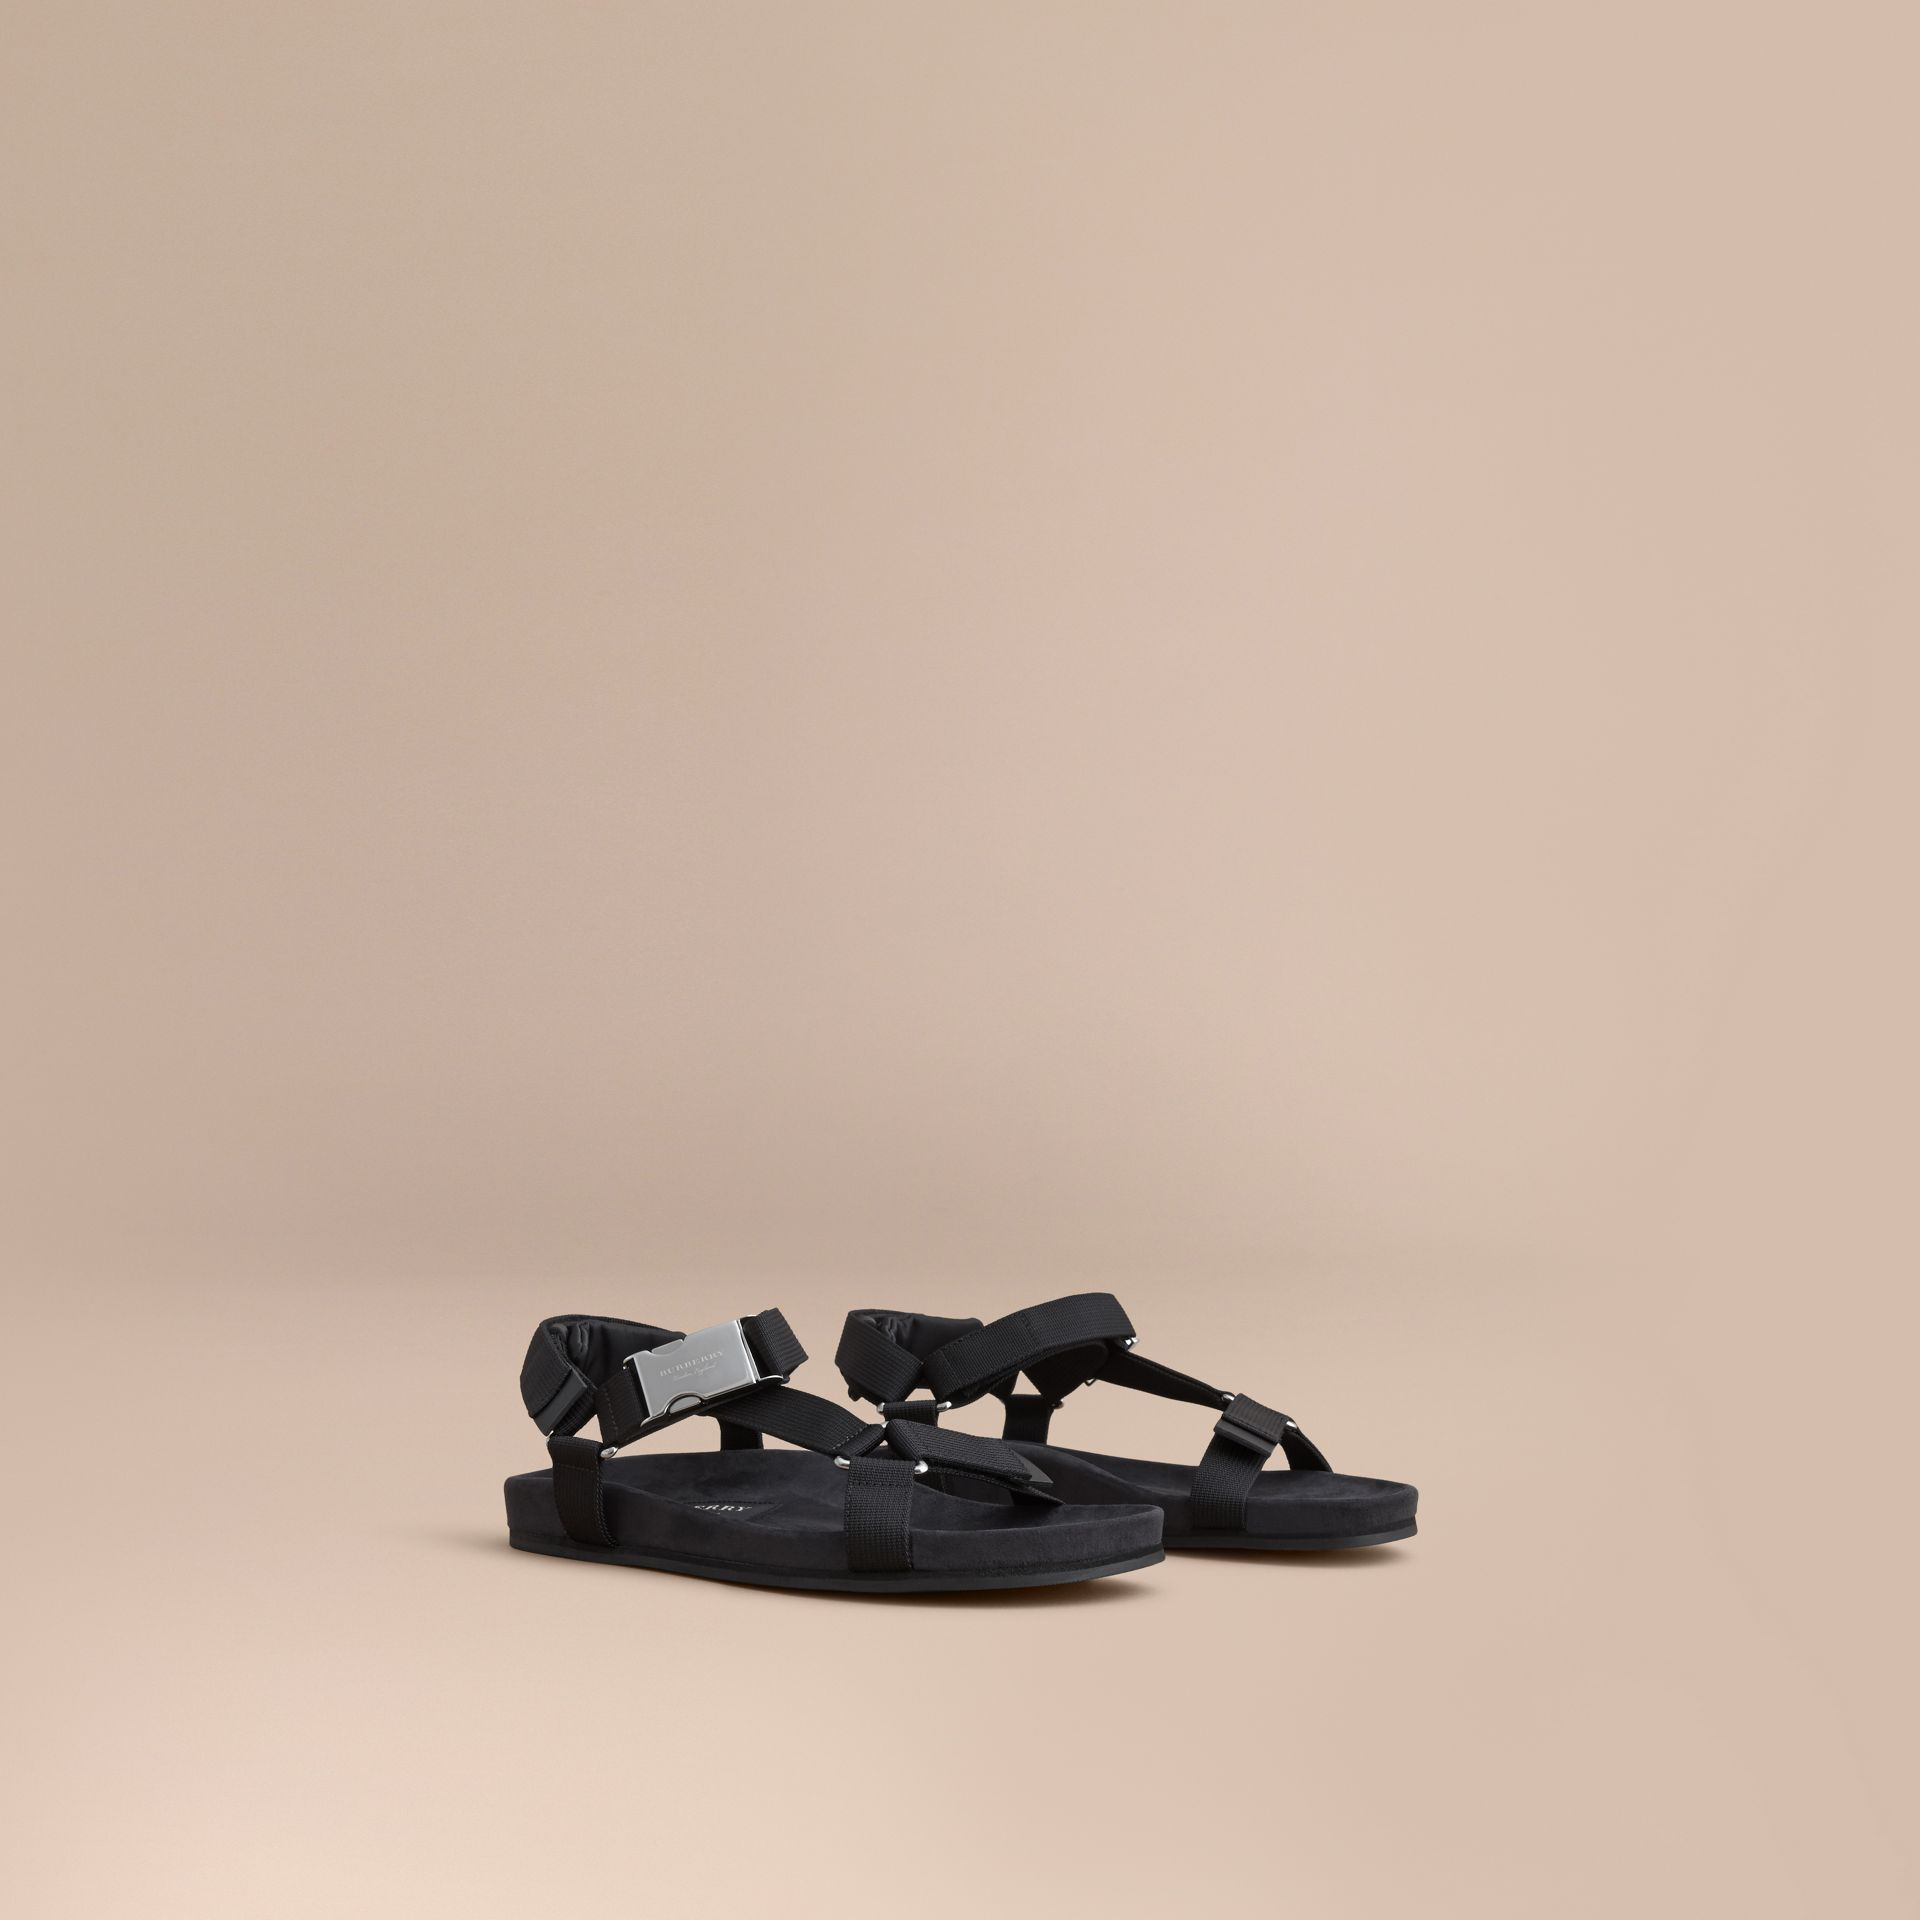 Three-point Strap Ripstop Sandals in Black - Men | Burberry - gallery image 1